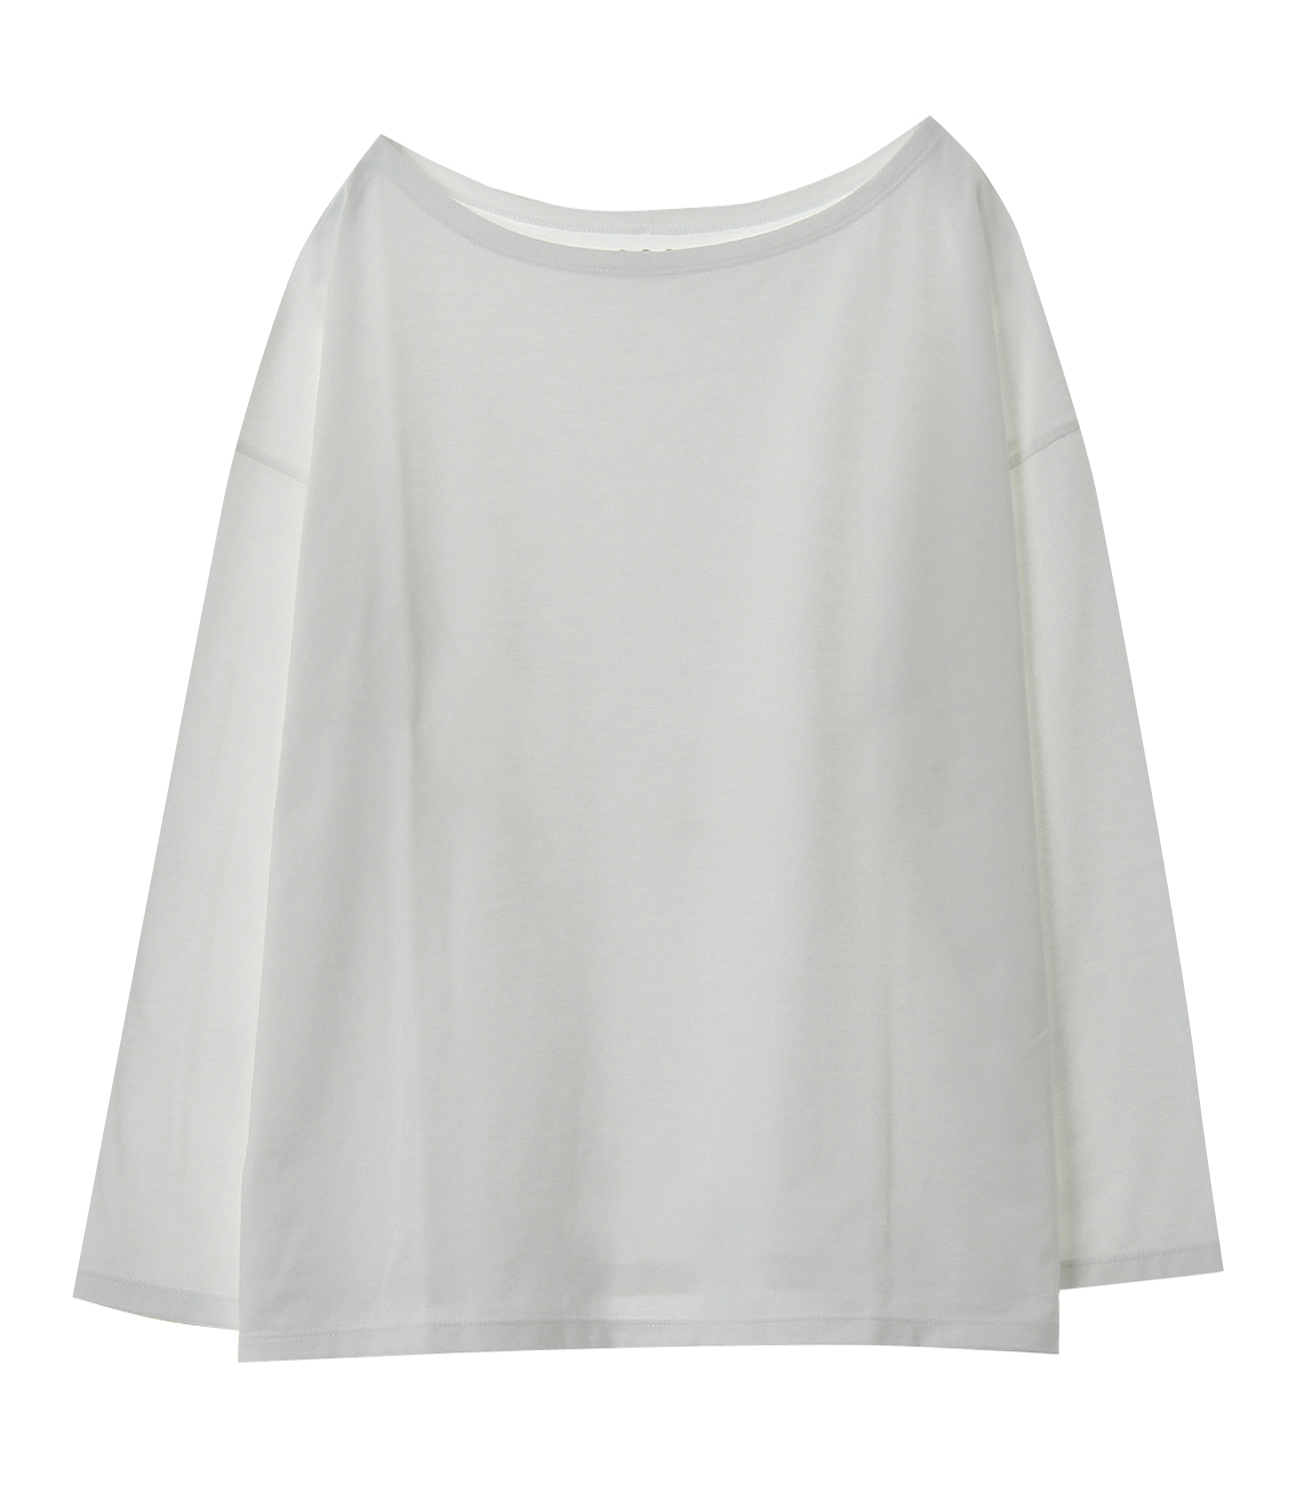 Powdery cotton 3/4wide boat neck 詳細画像 white 1